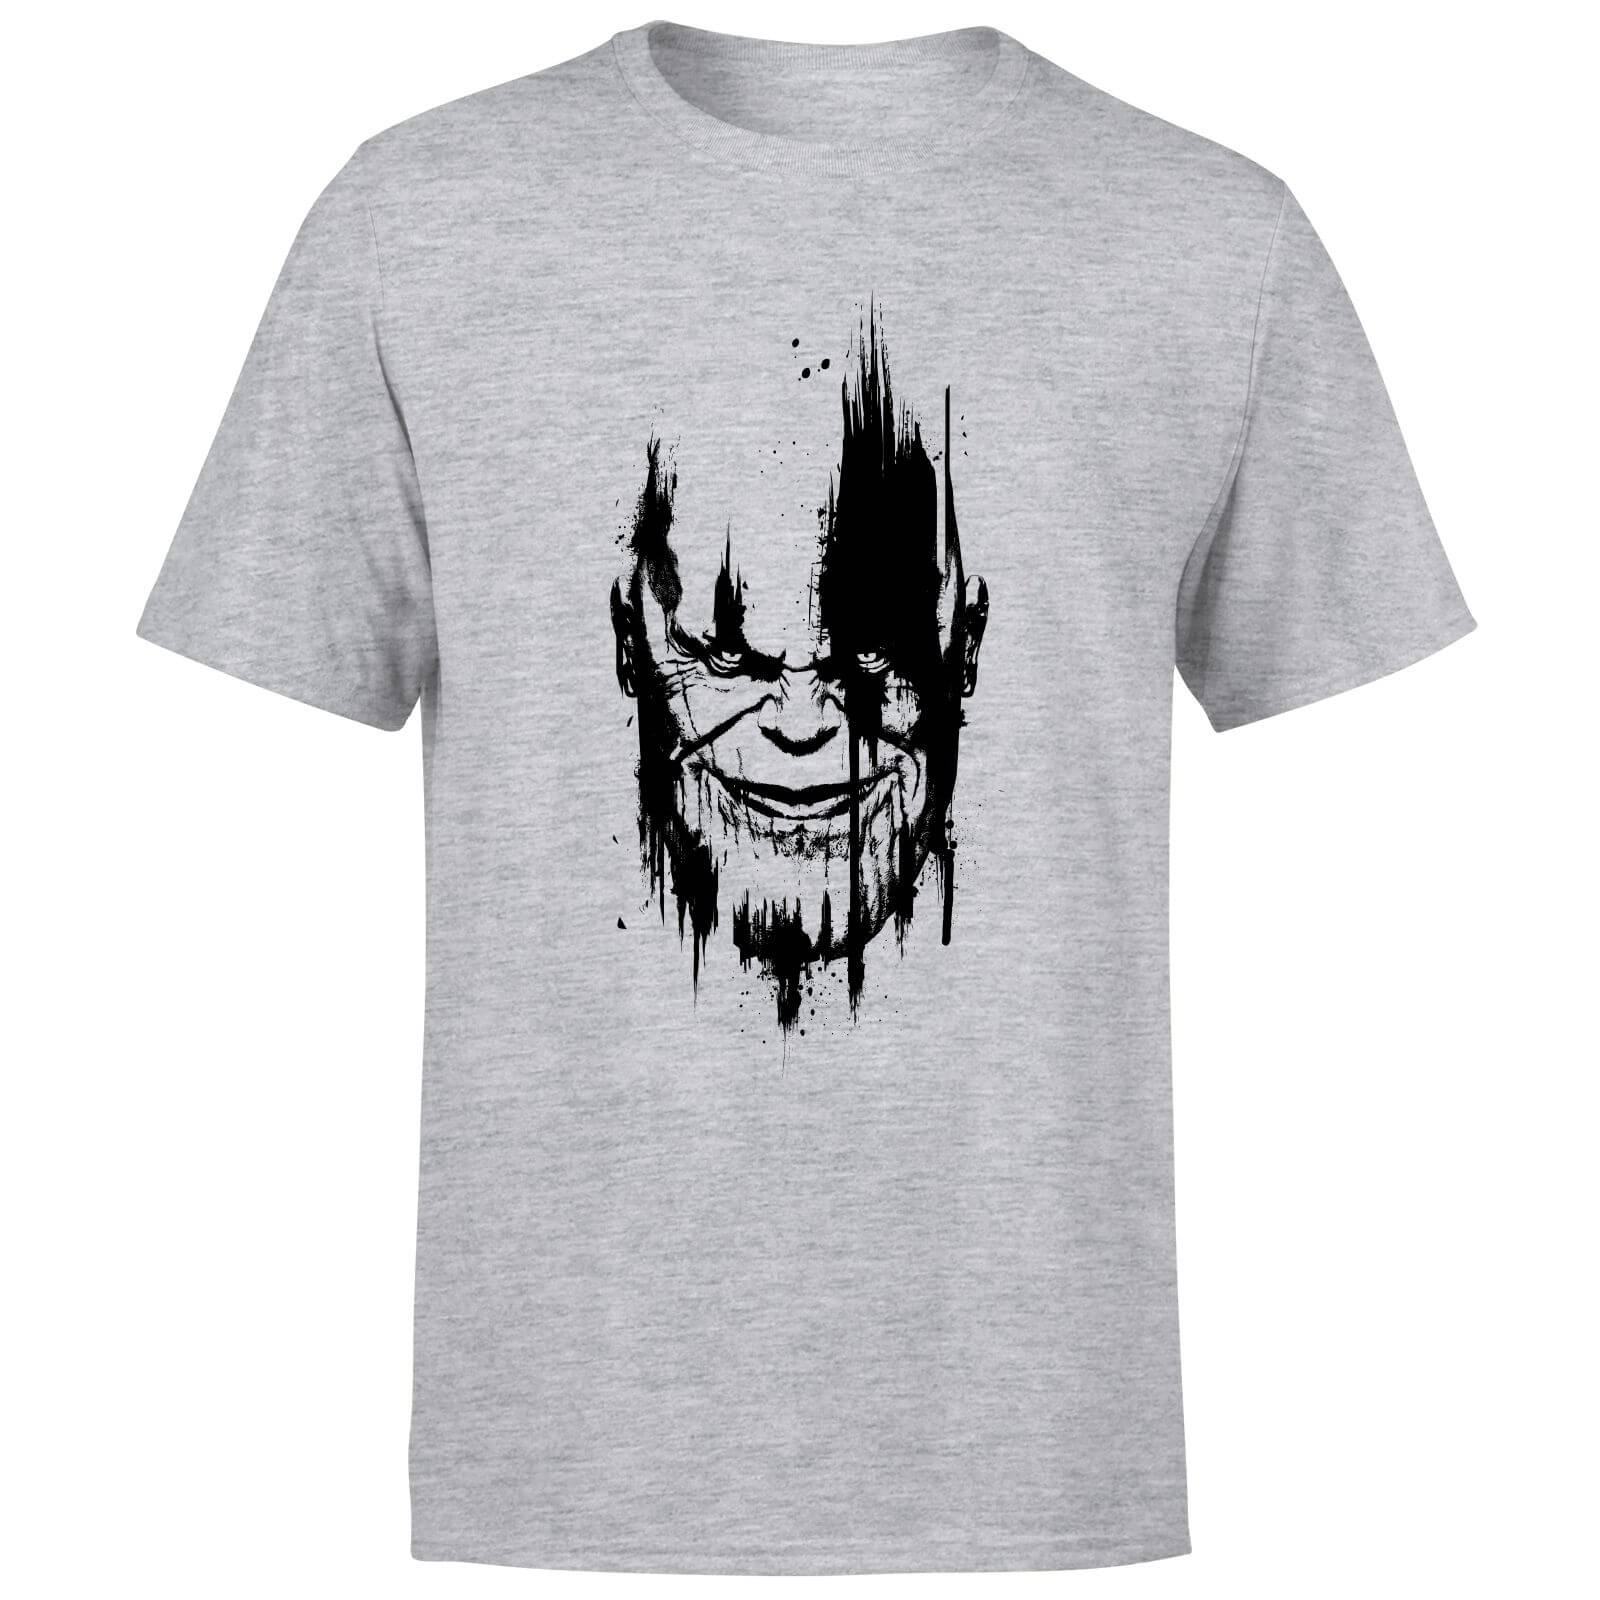 Marvel Avengers Infinity War Thanos Face T-Shirt - Grey